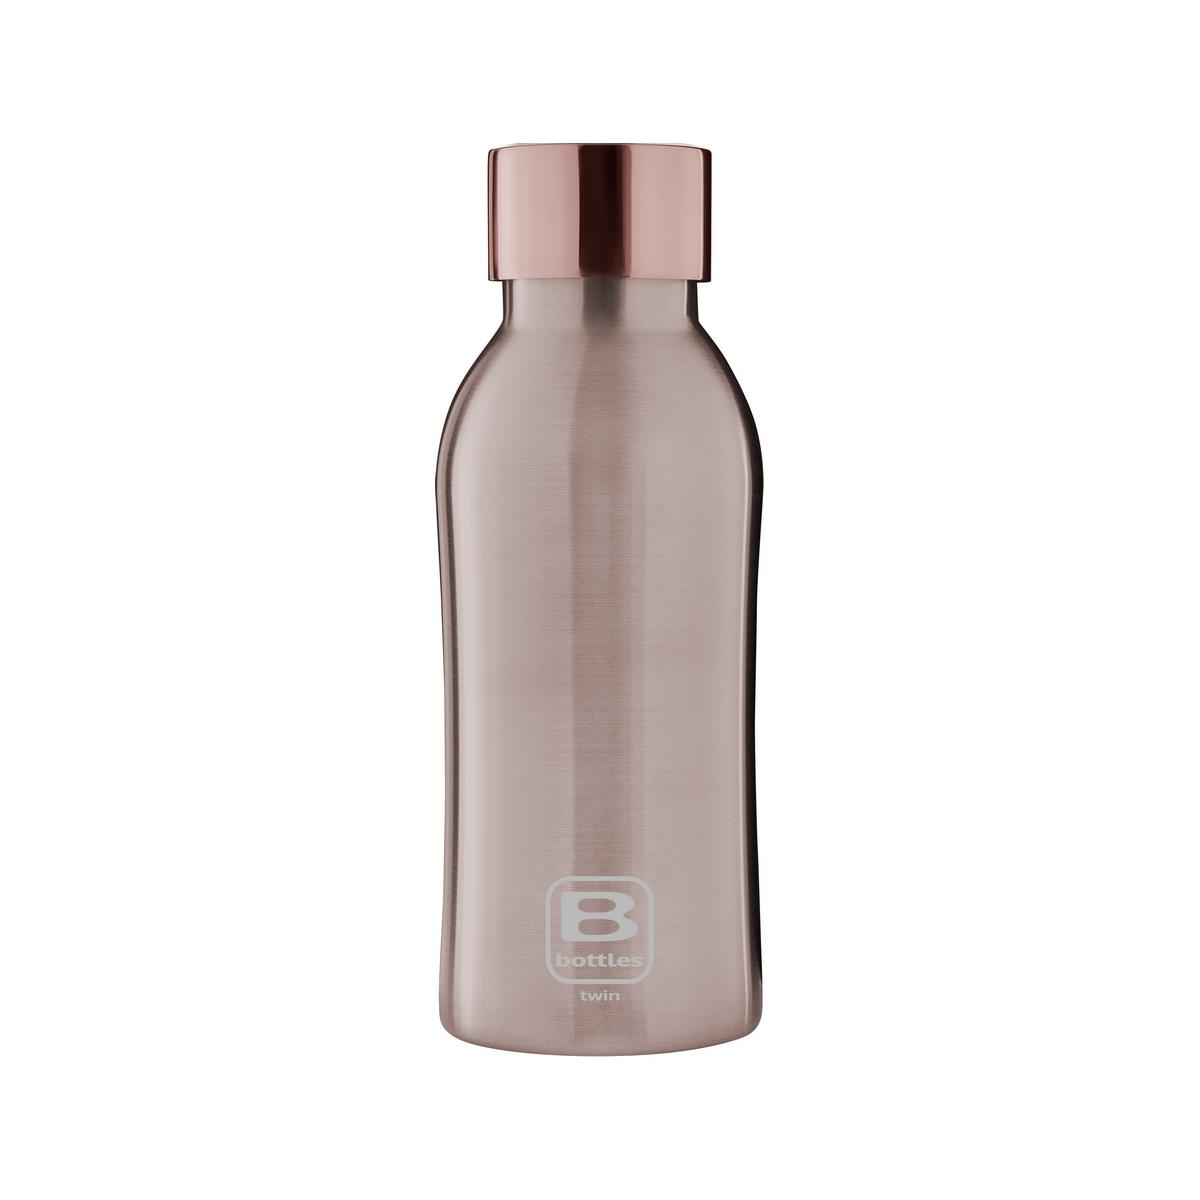 B Bottles Twin - Rose Gold Brushed - 350 ml - Bottiglia Termica a doppia parete in acc. inox 18/10